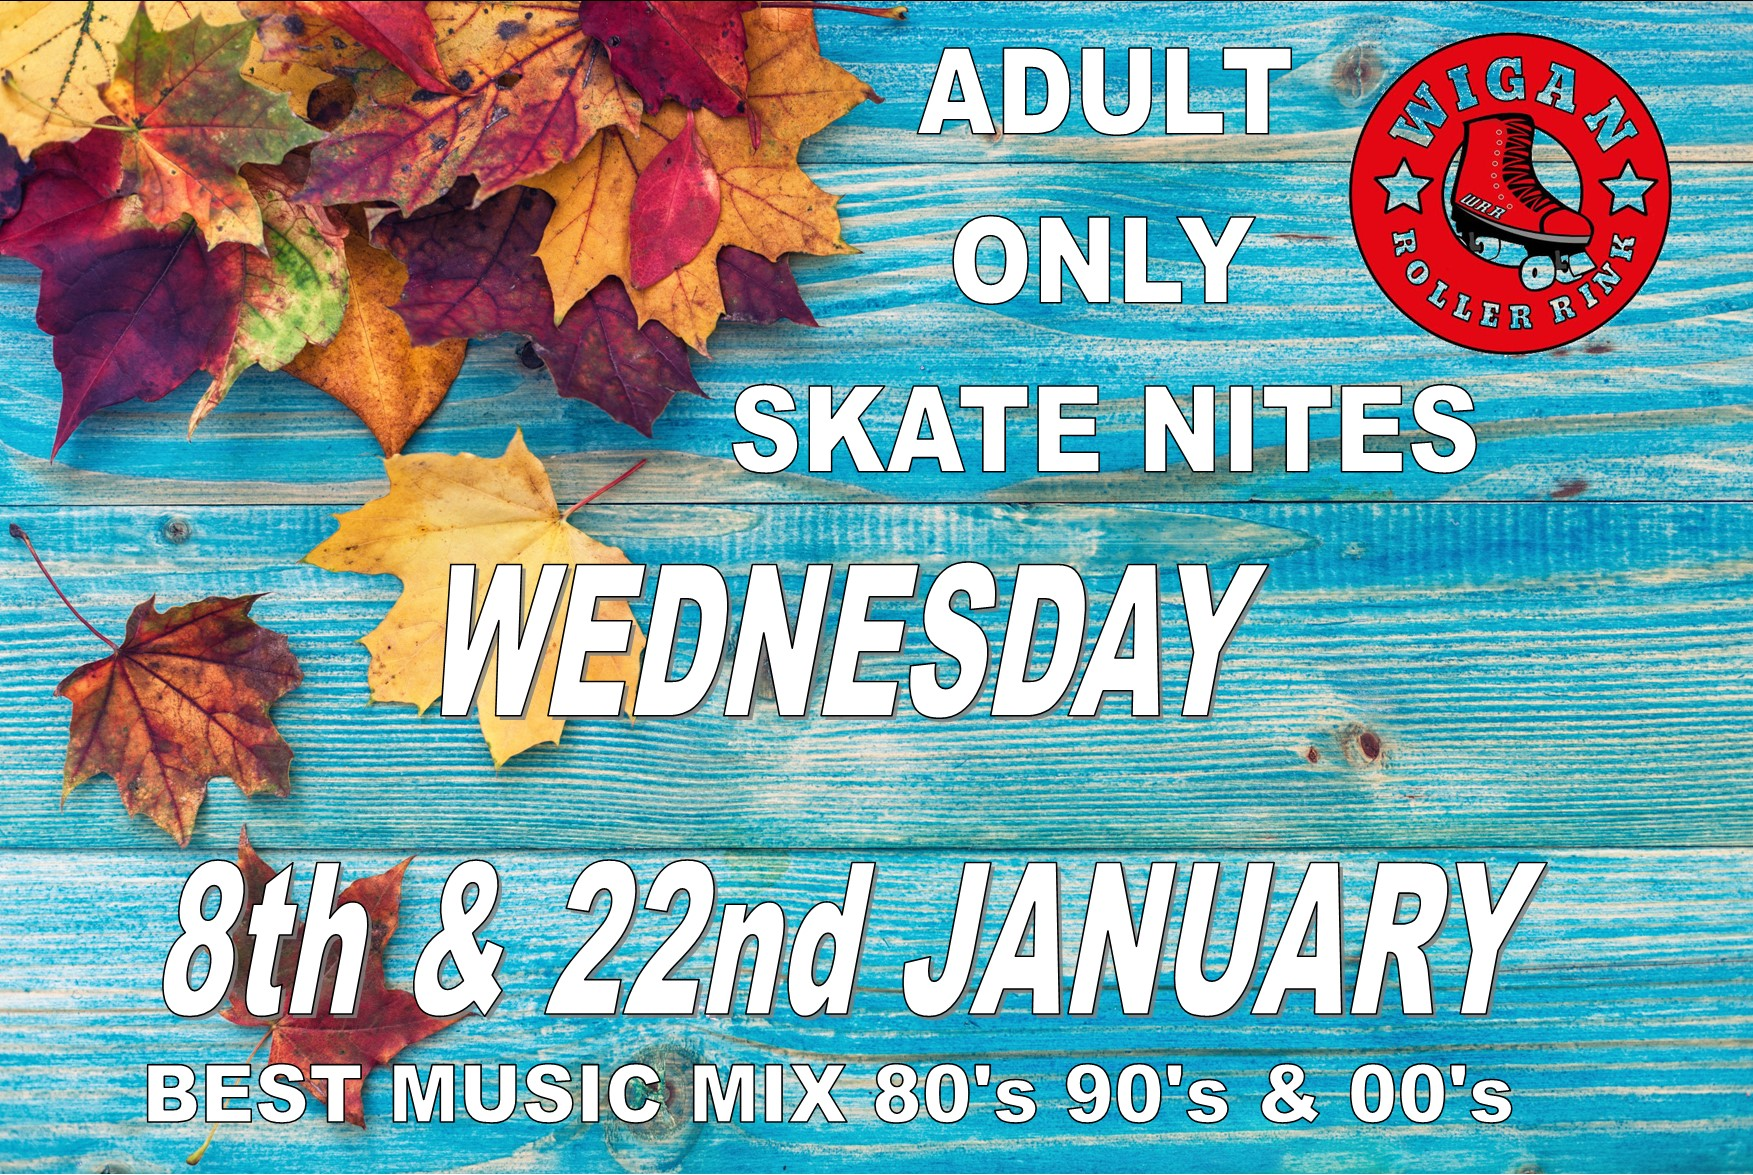 OVER 18'S ONLY WEDS 8TH & 22ND JANUARY 7PM - 10PM